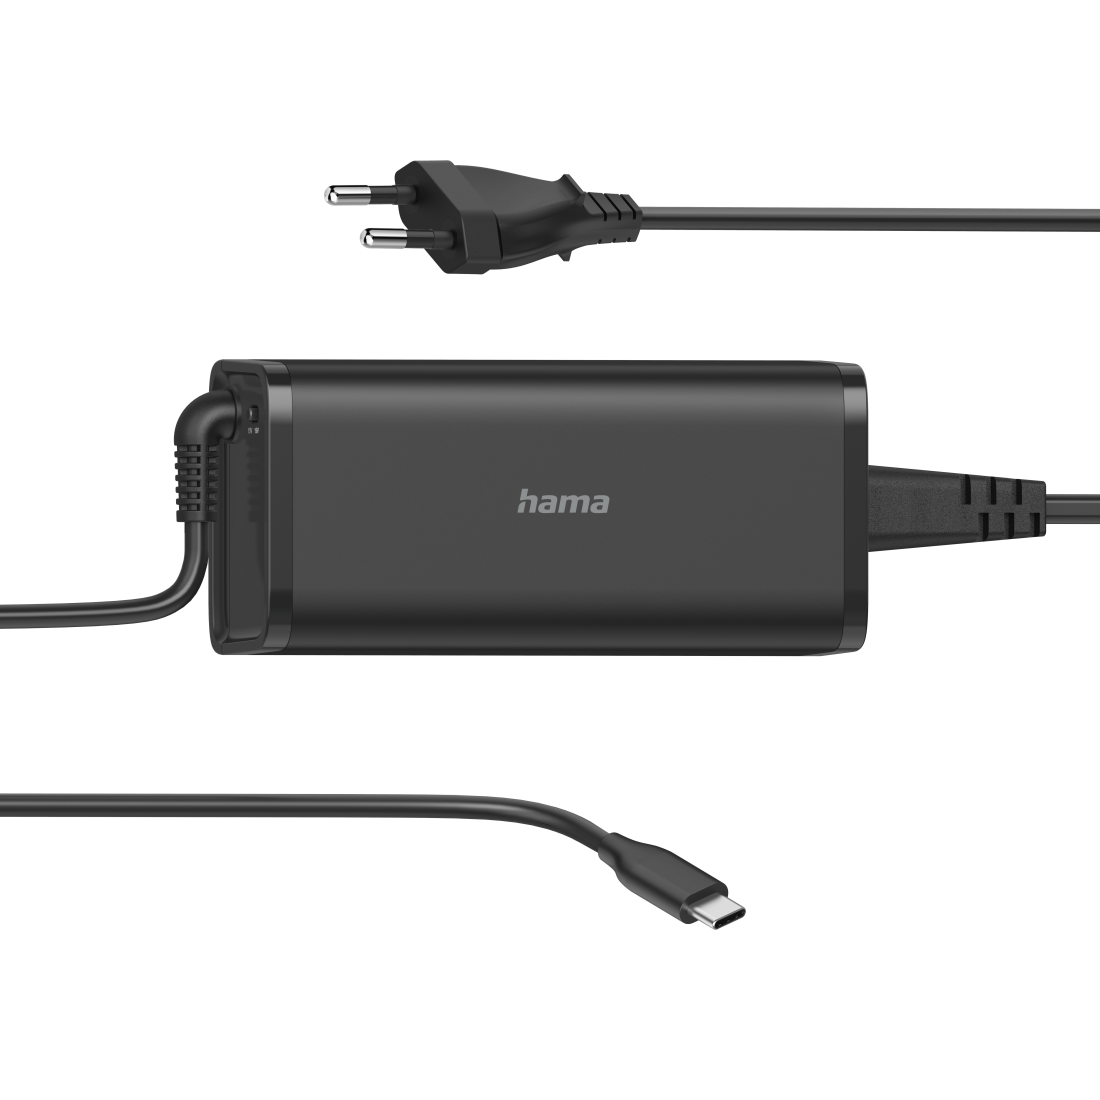 abx High-Res Image - Hama, Universele USB-C-notebook-netadapter, Power Delivery (PD), 5-20V/92W